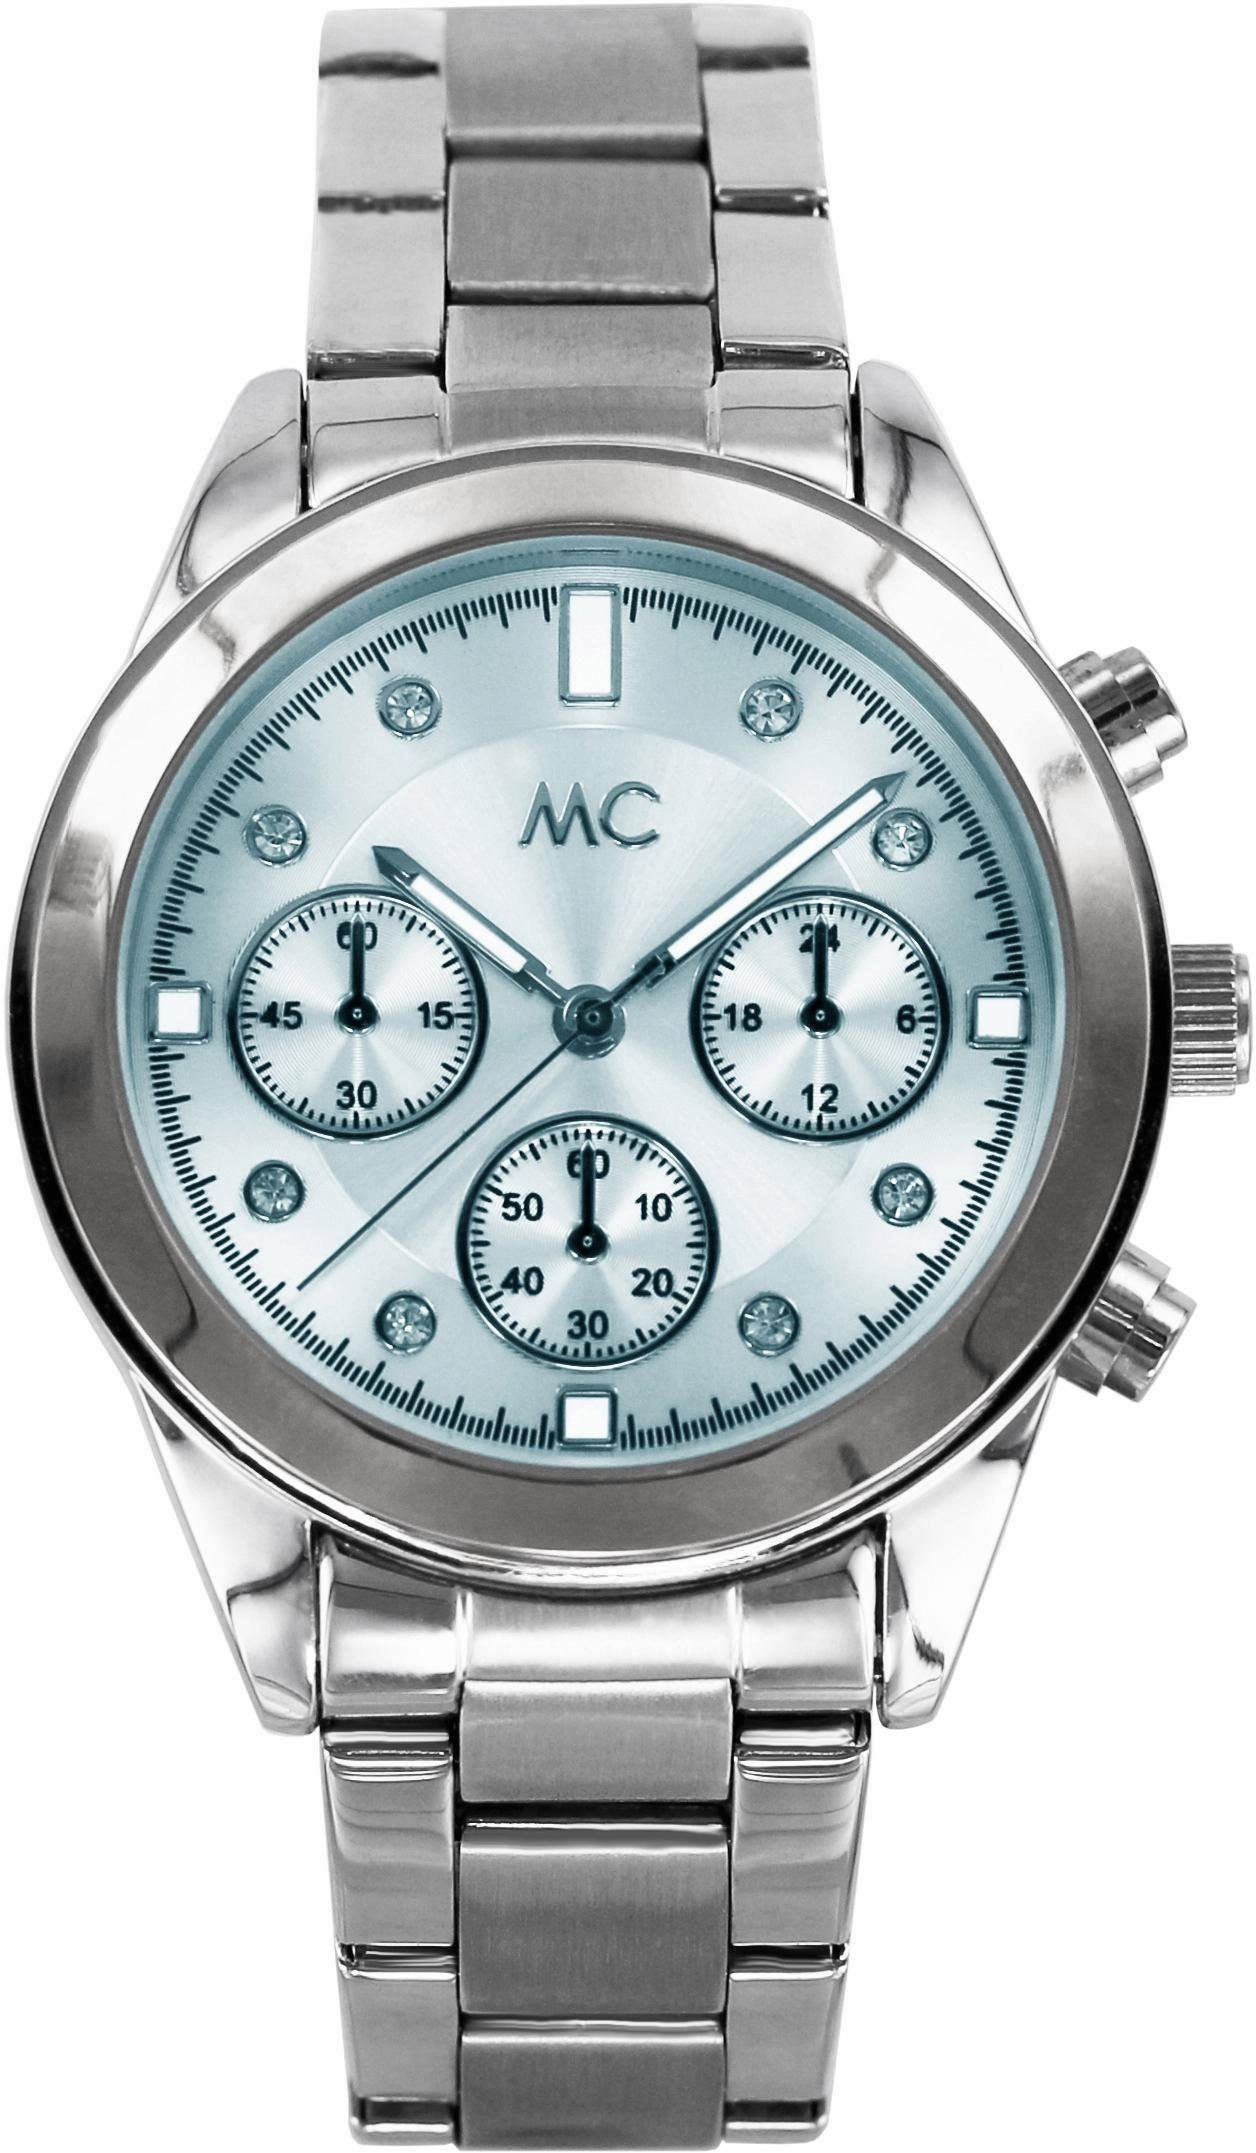 MC Quarzuhr »51885«, in Chrono-Optik